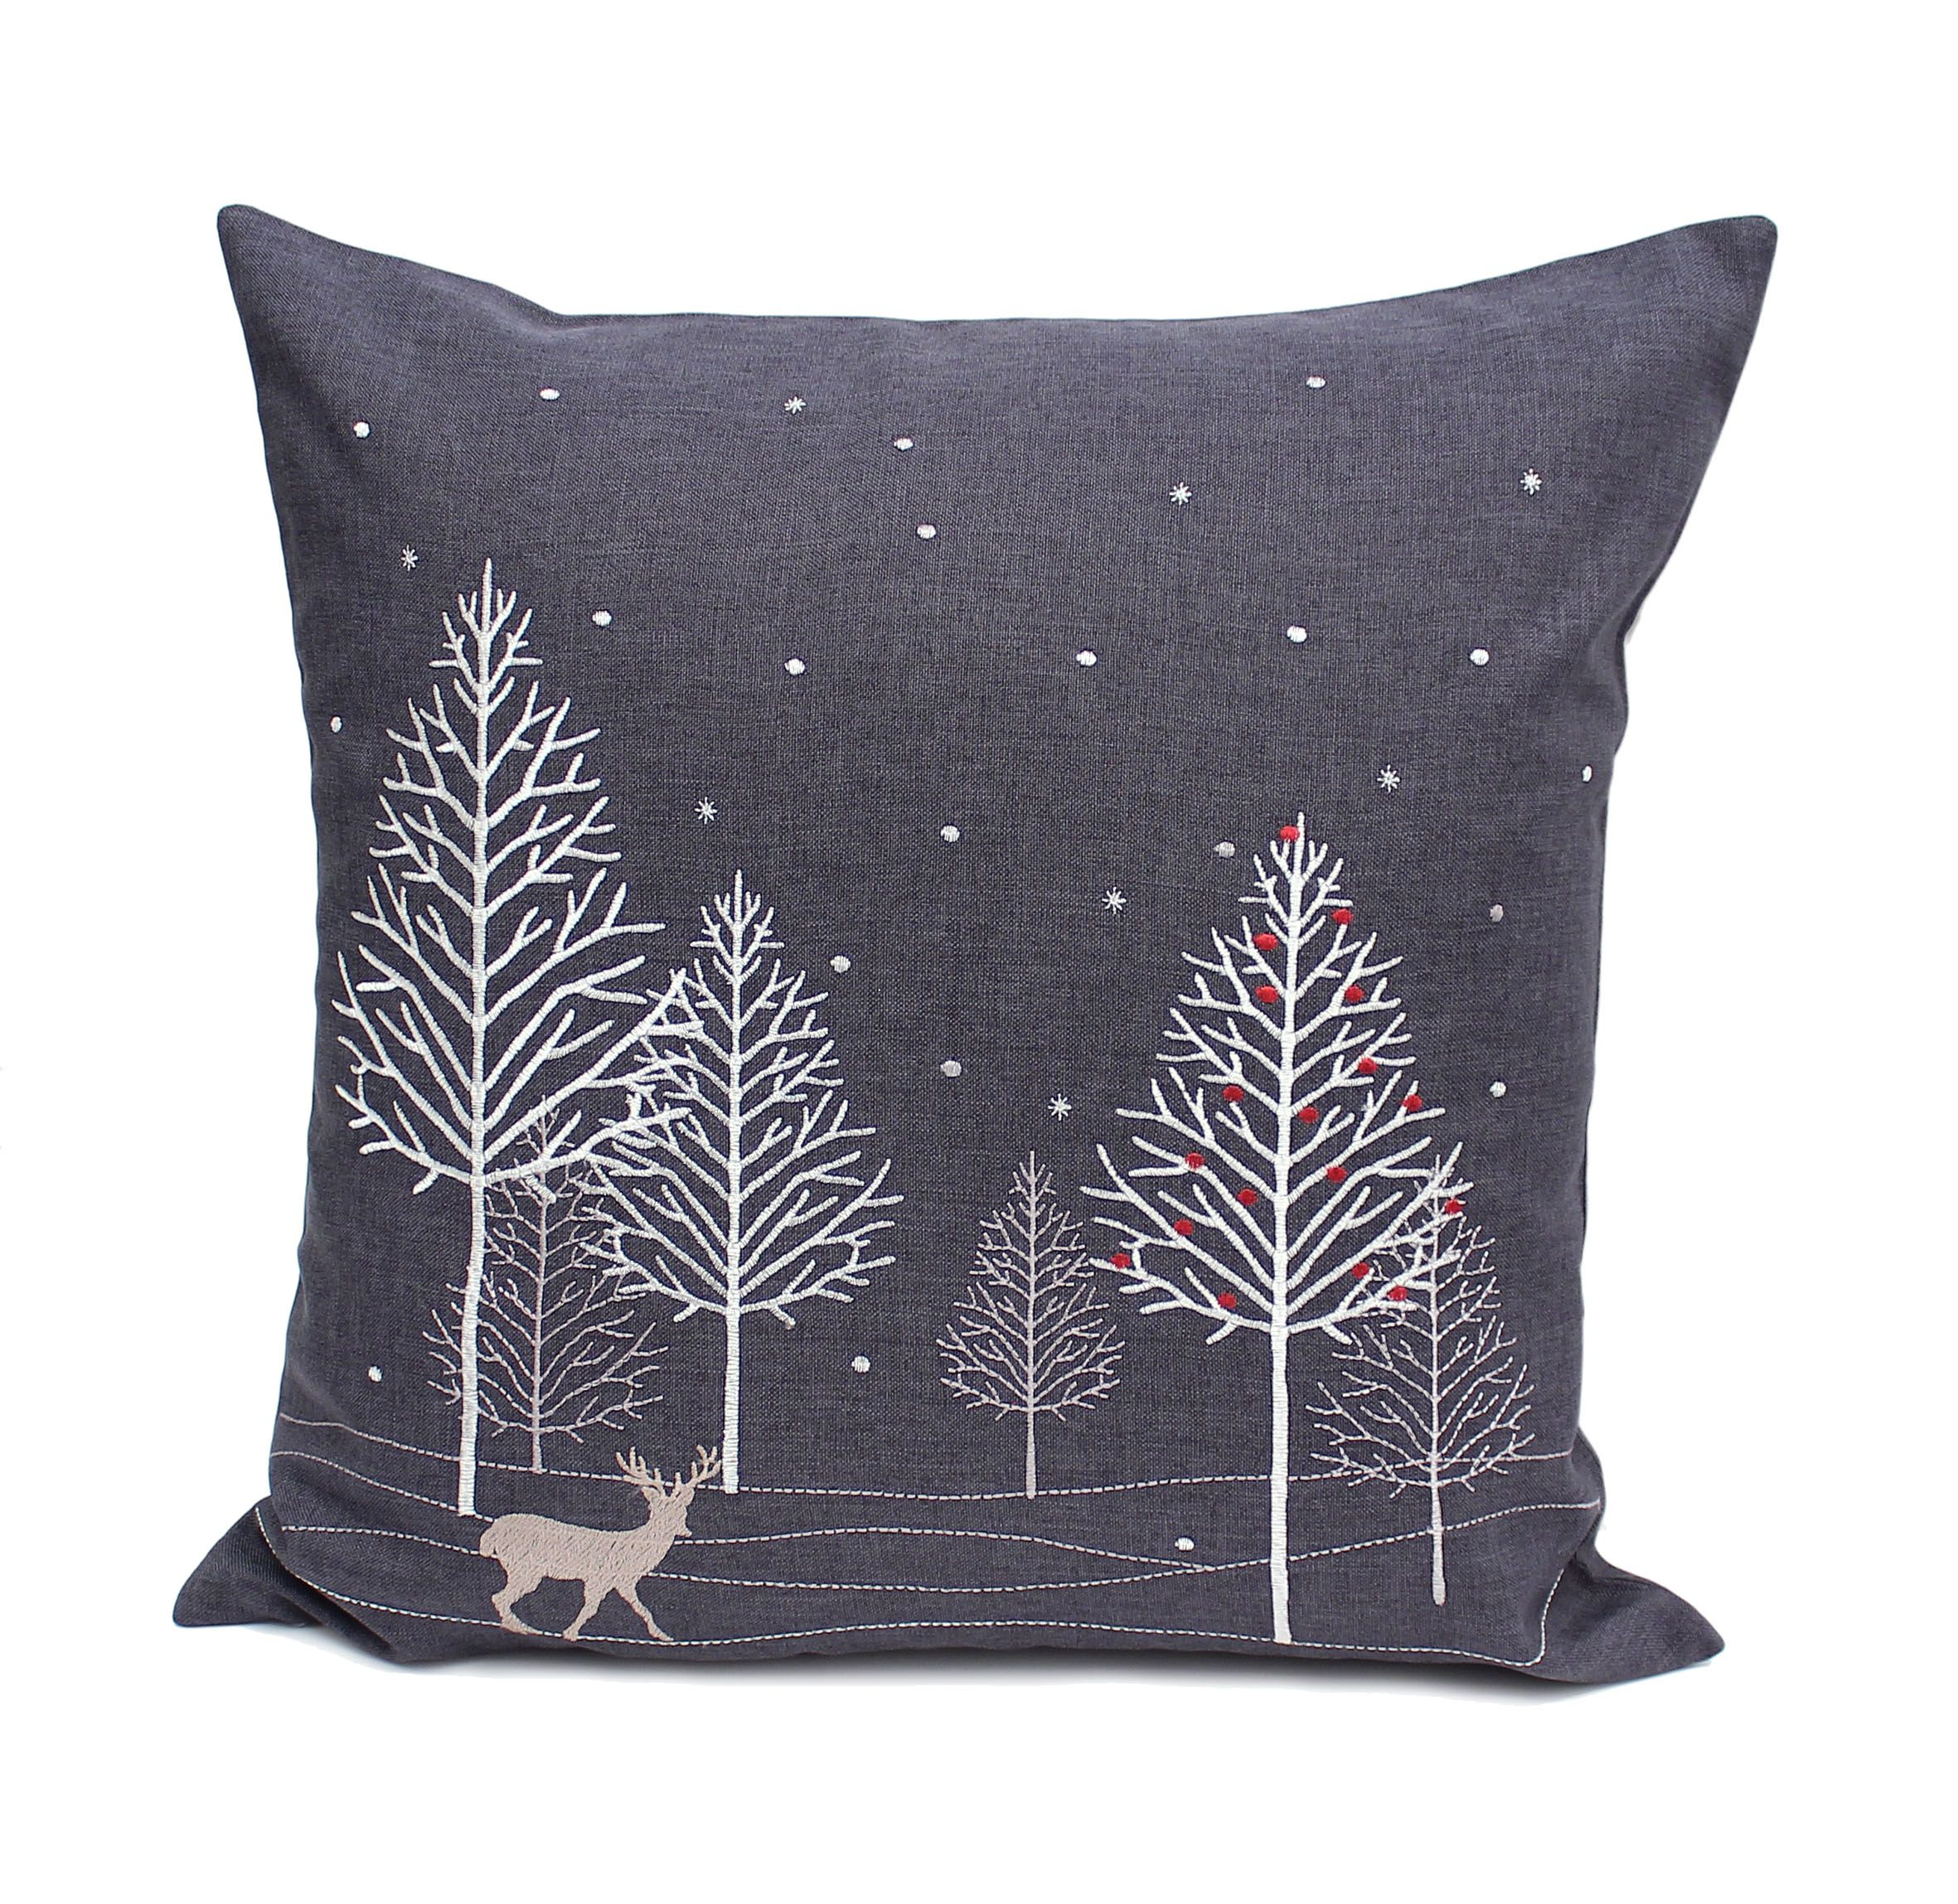 Winter Woods Embroidered Christmas Cushion 45cm x 45cm